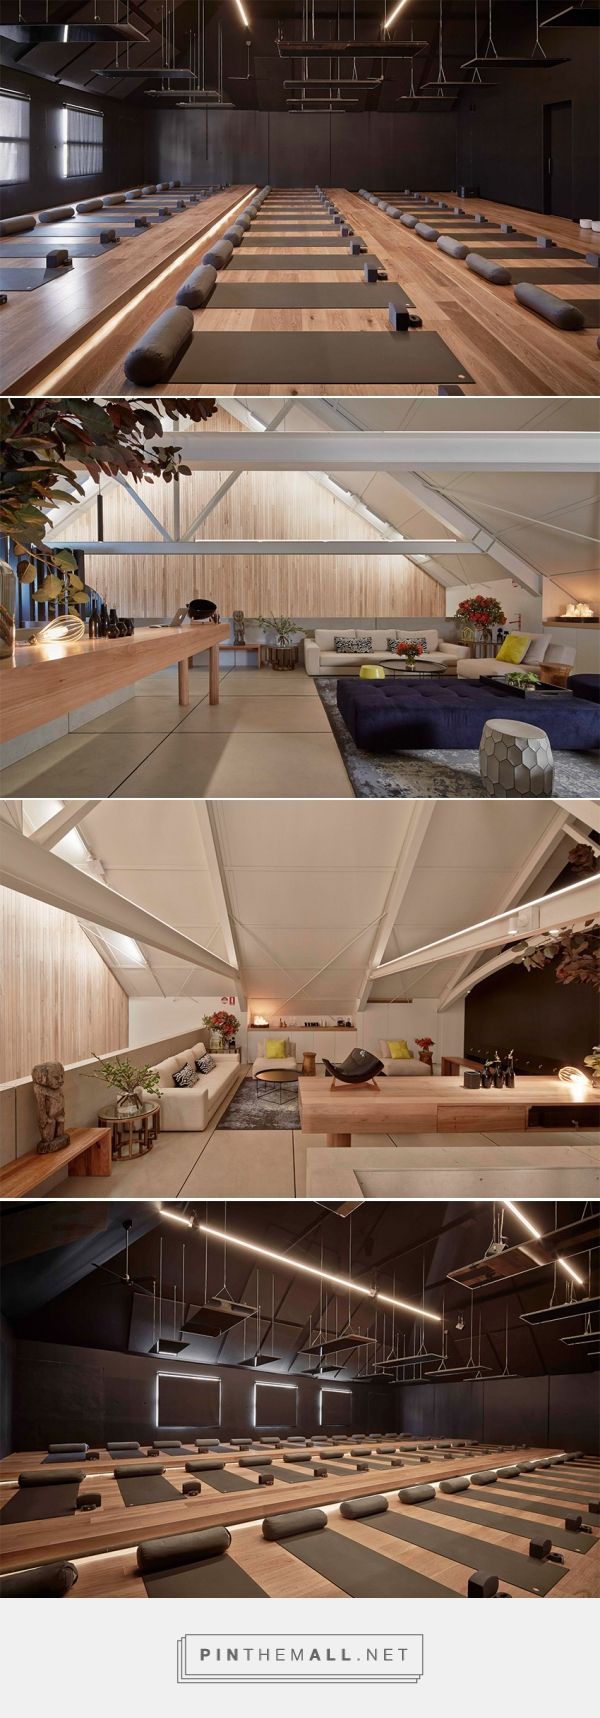 The Cool Hunter - Humming Puppy Yoga Studio, Prahran, Melbourne - created via http://pinthemall.net